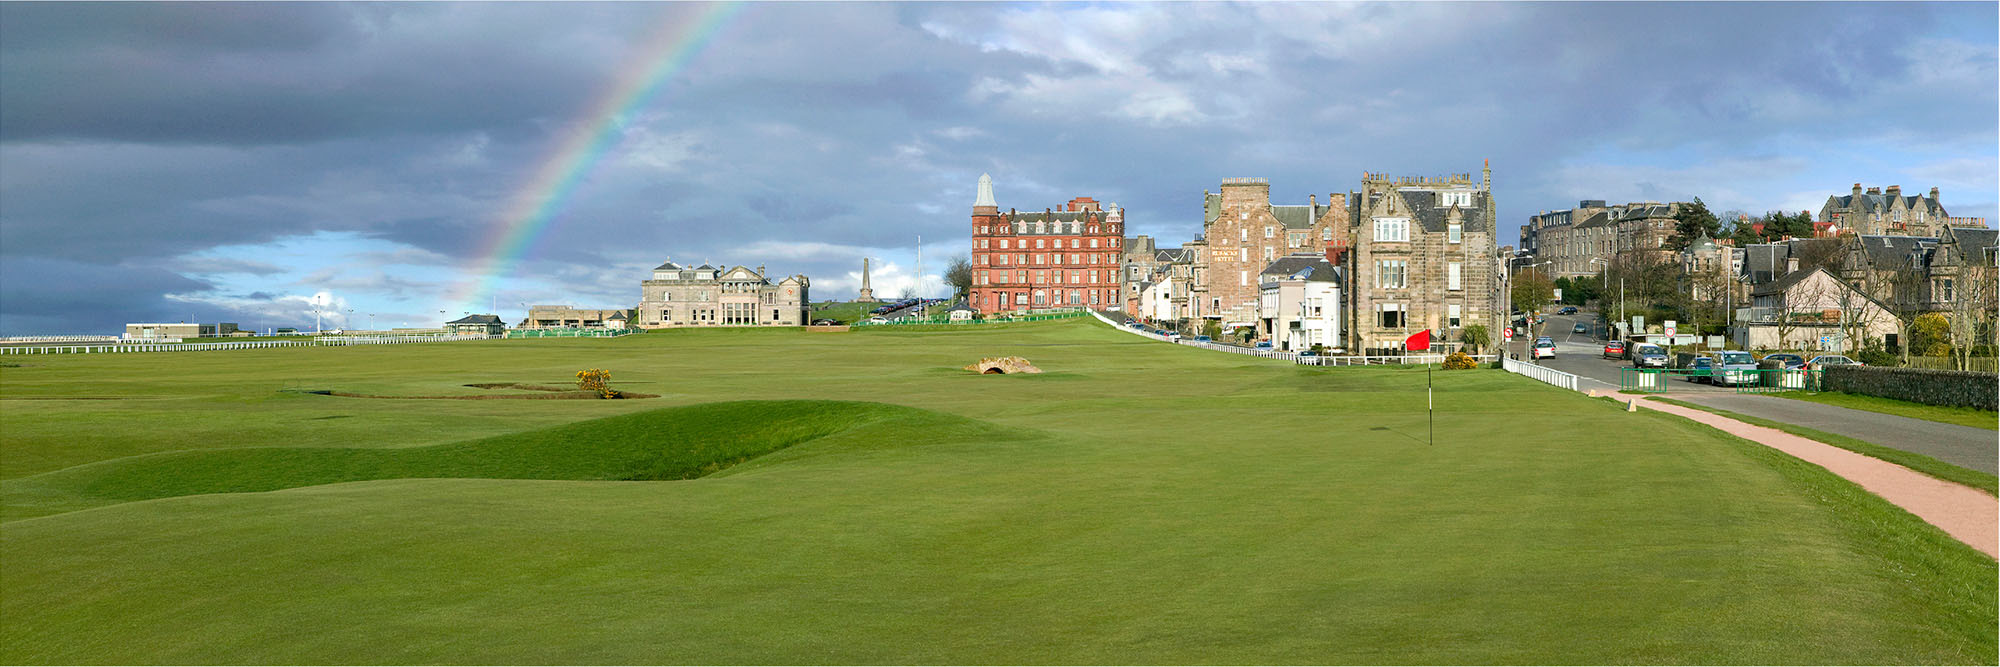 Golf Course Image - St Andrews No. 17 (Rainbow)